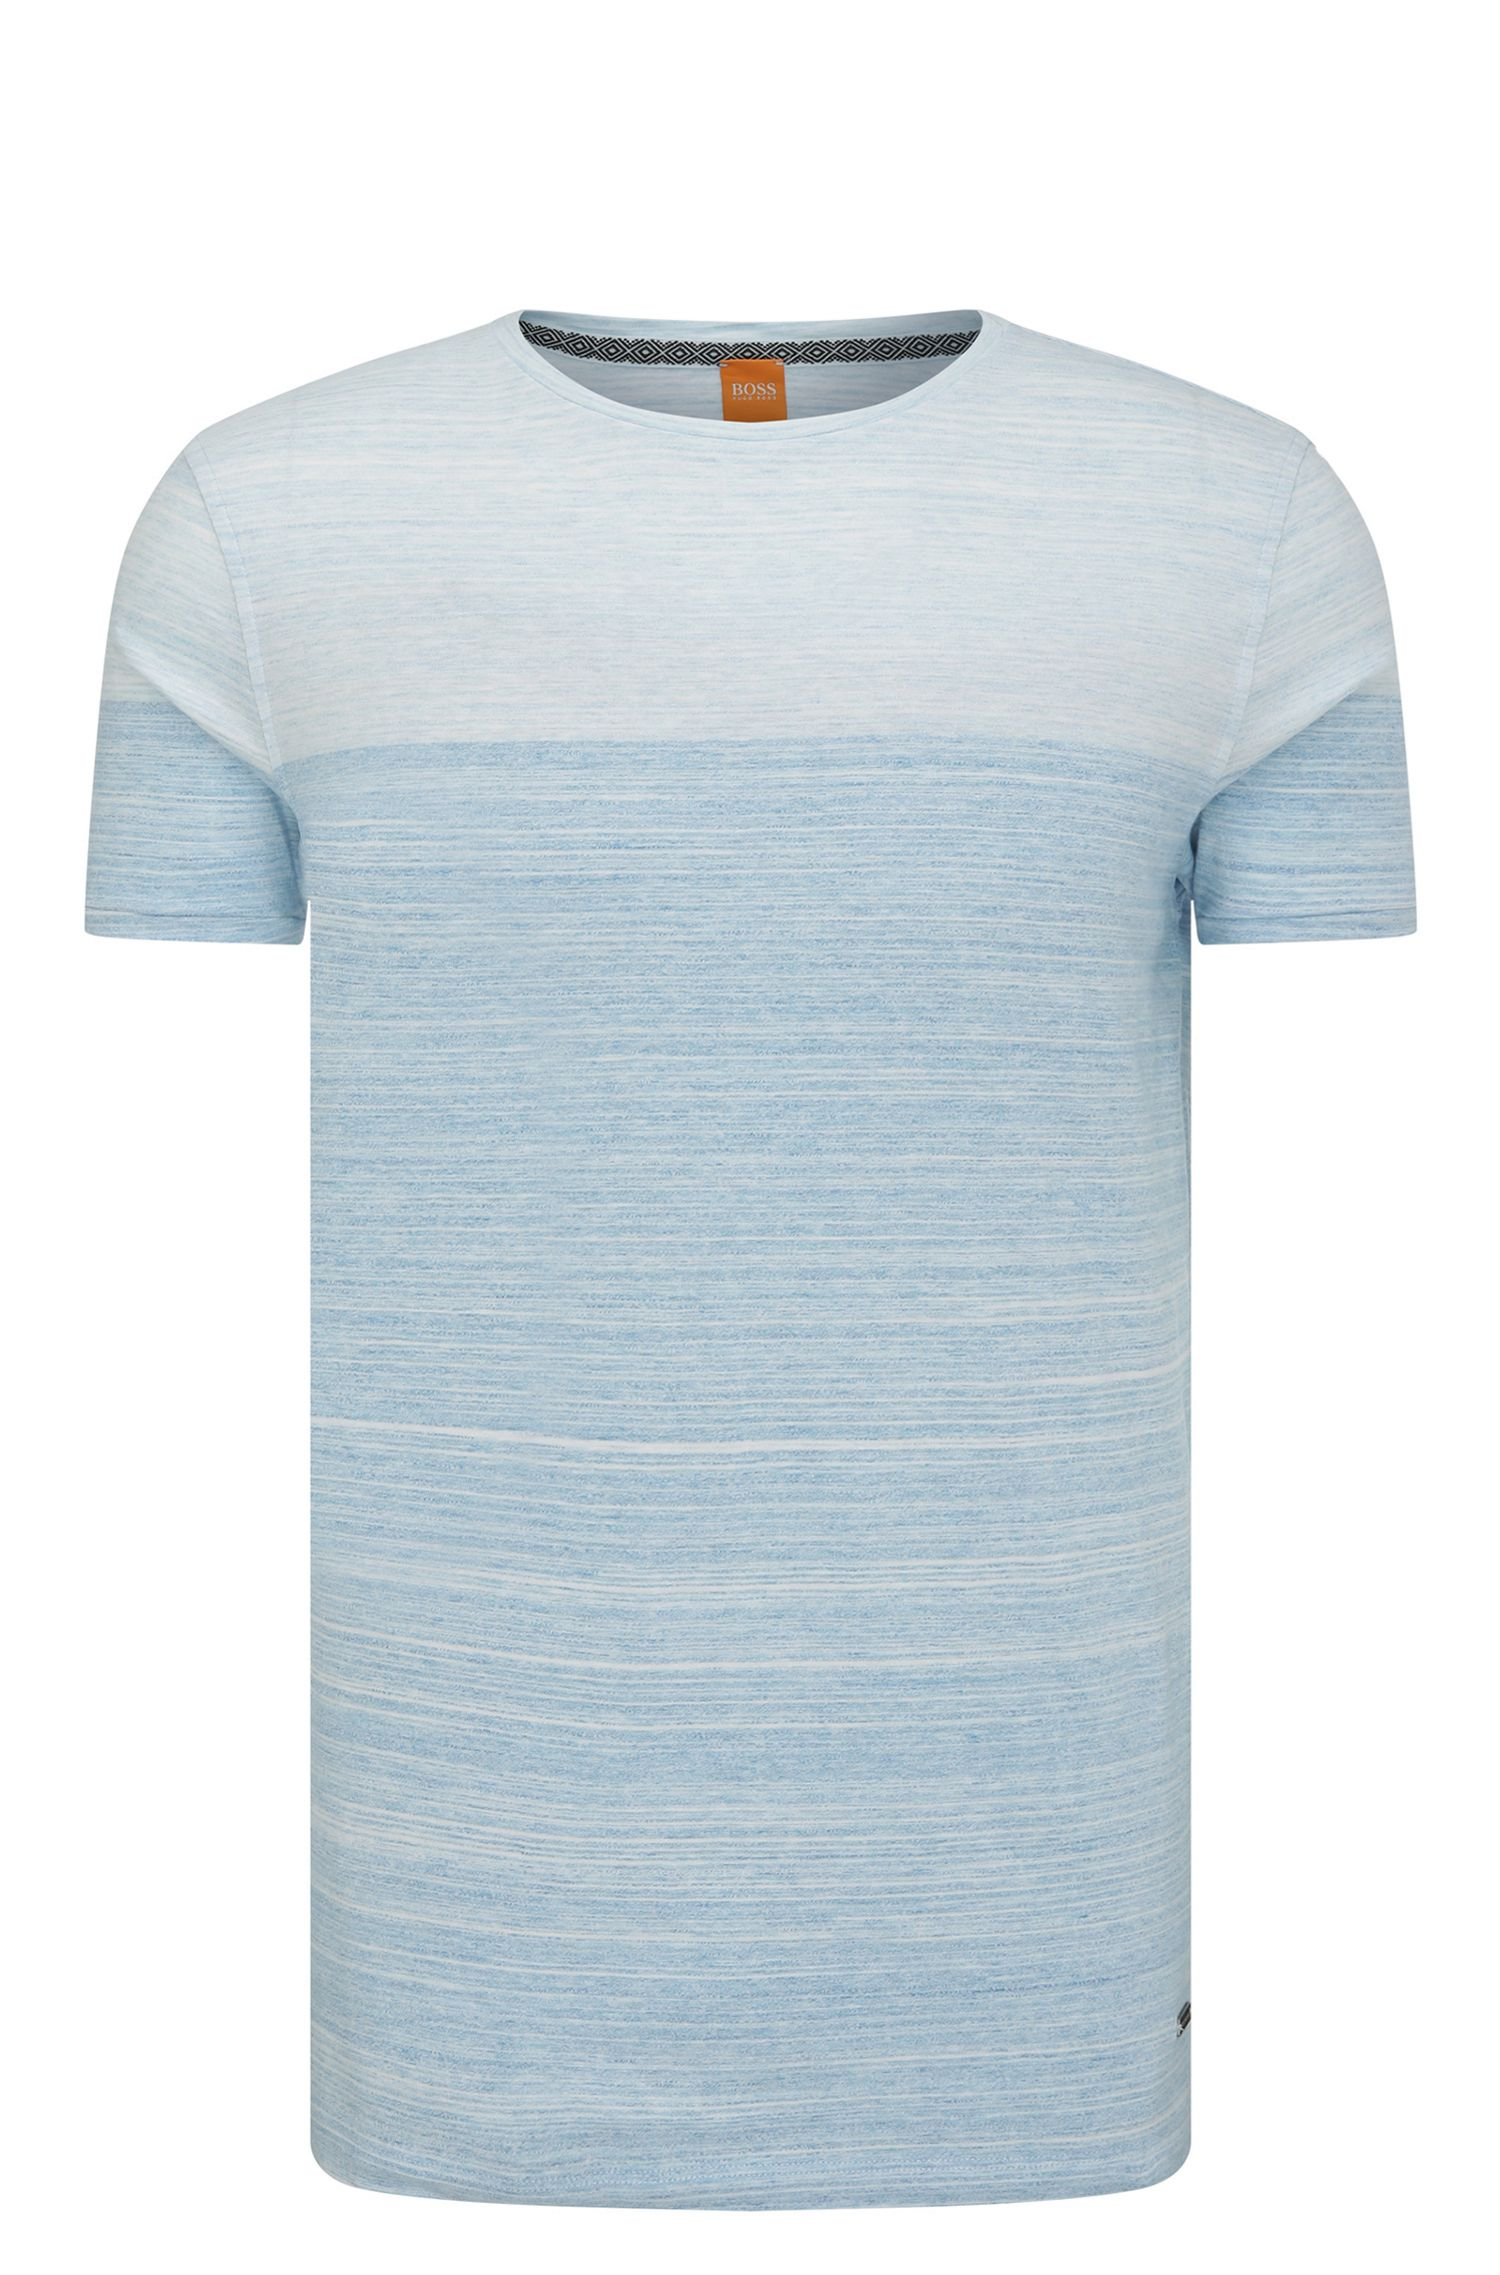 Cotton Ombre Striped Tee Shirt | Trumble